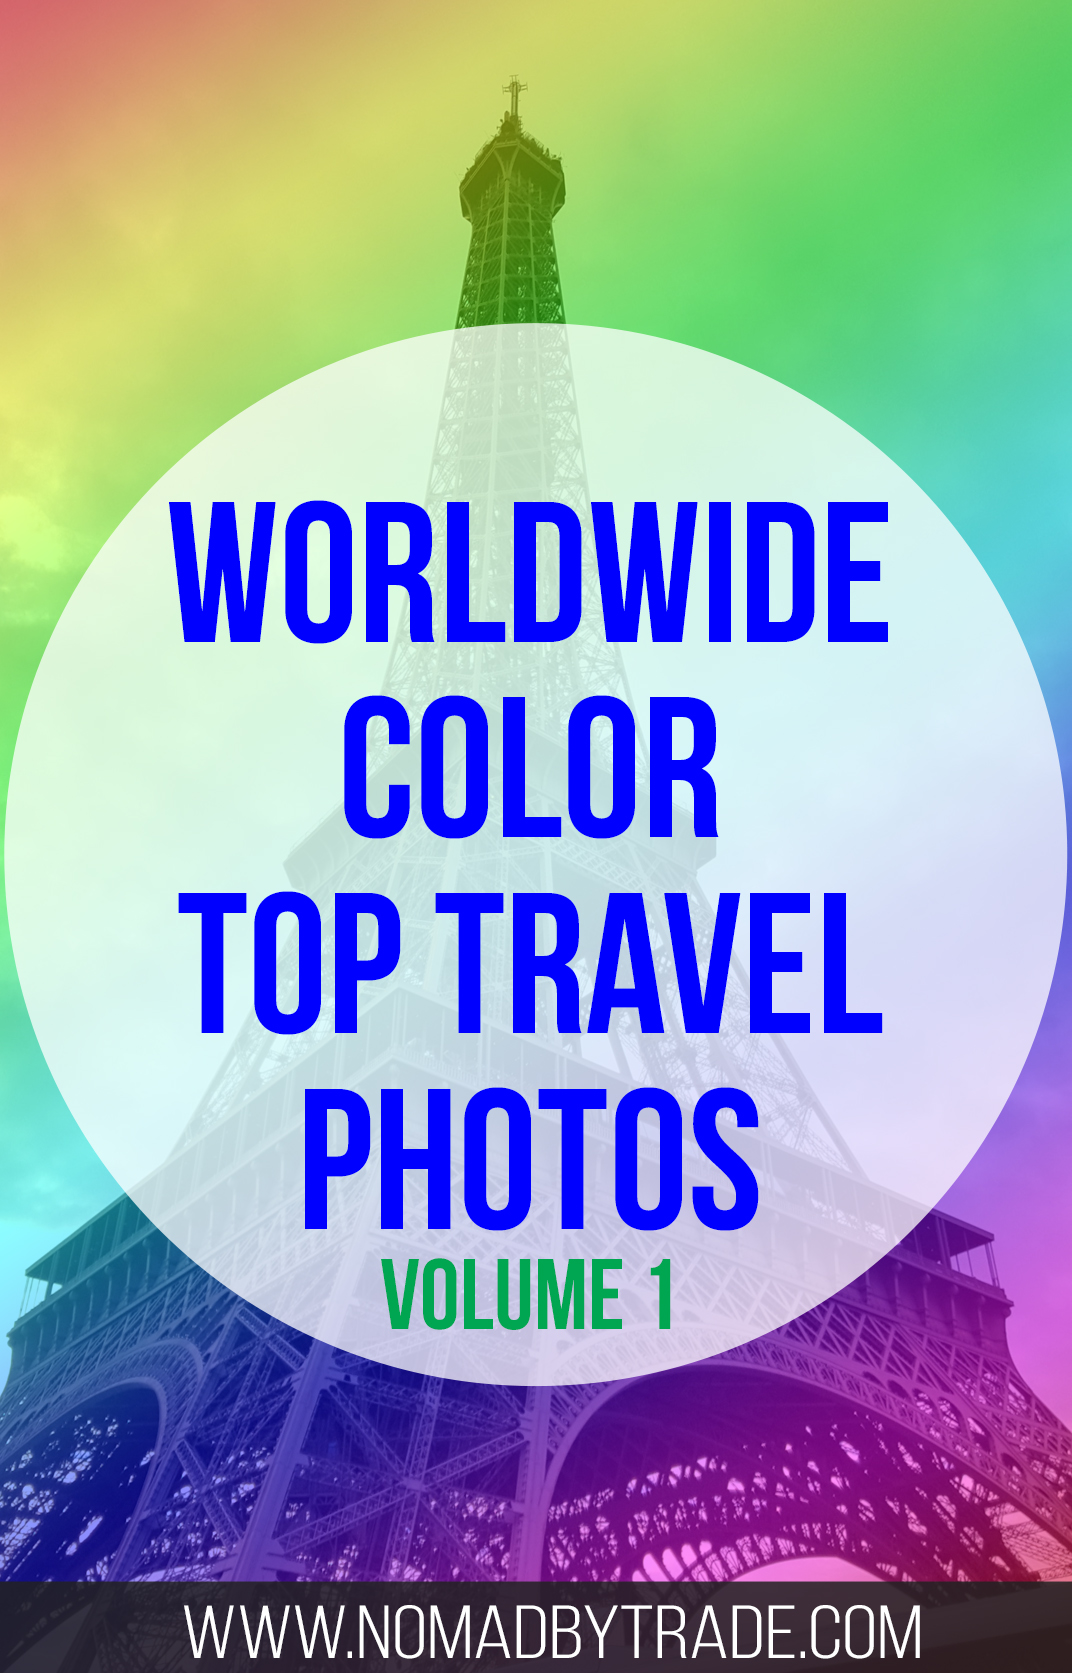 The top colorful travel photos from the Worldwide Color Instagram account for the month of May. Features Disney World, China, Belize, Croatia, and Abu Dhabi.